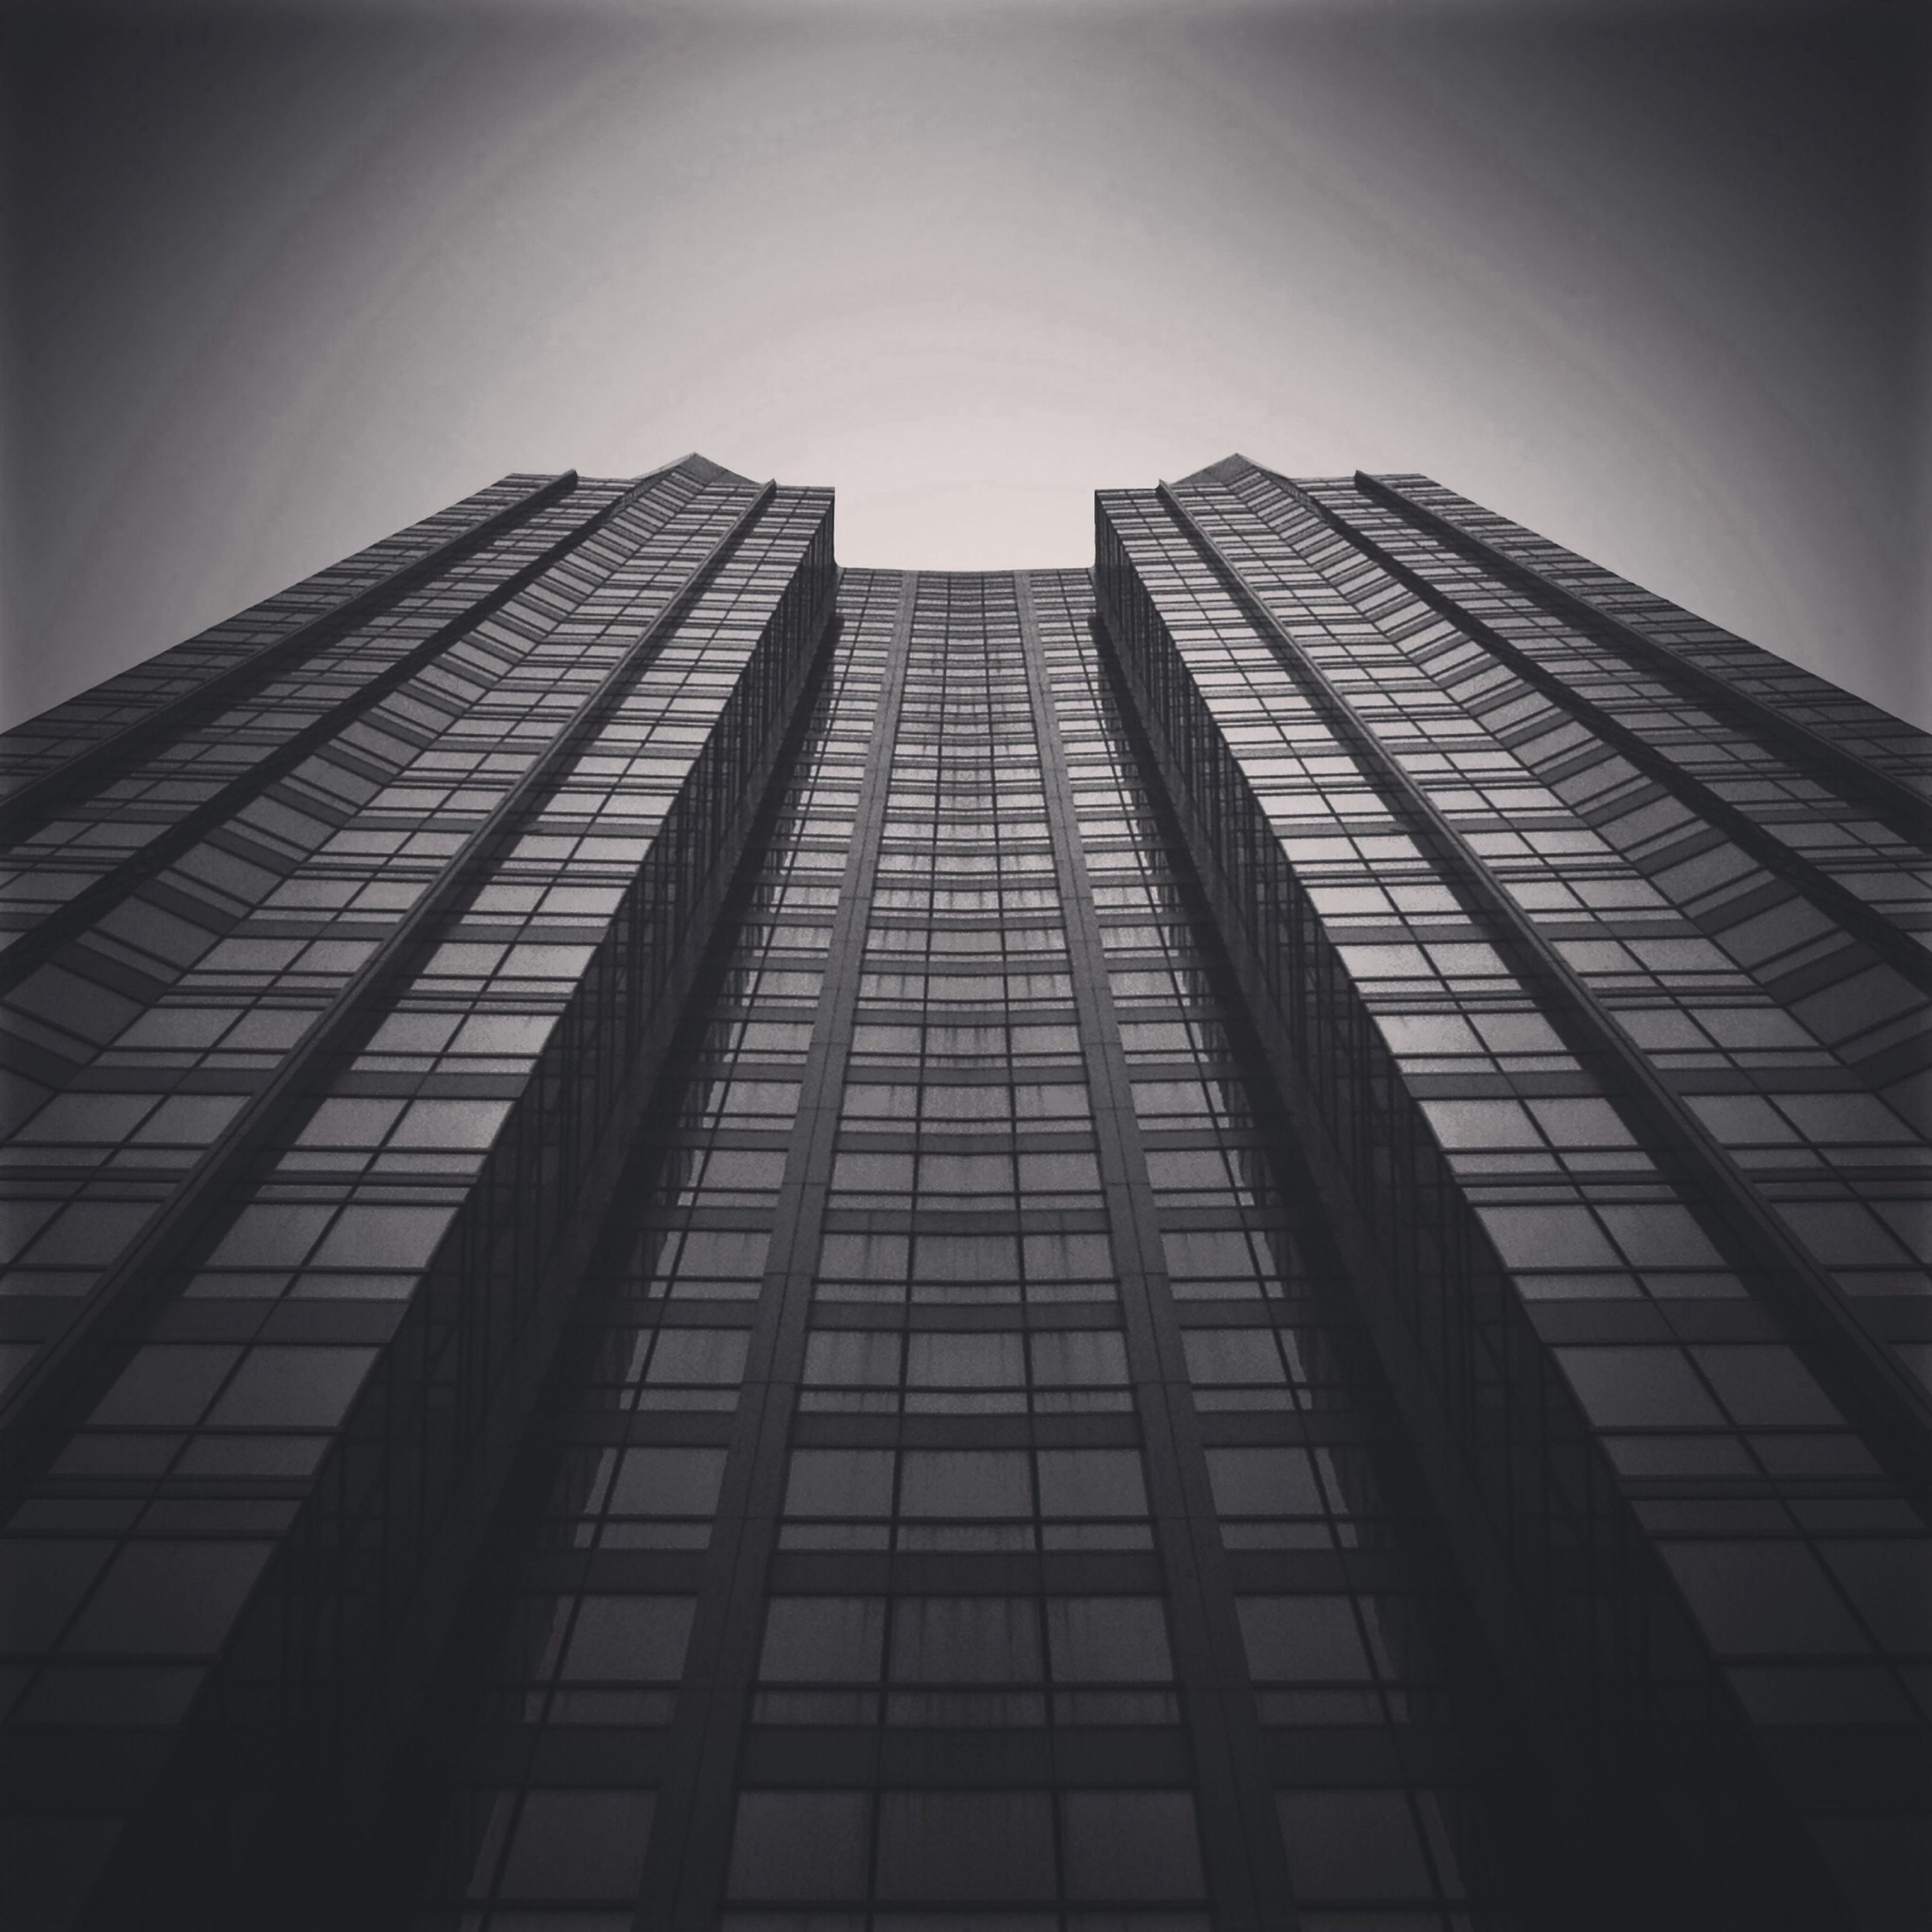 architecture, building exterior, built structure, low angle view, office building, modern, city, skyscraper, tall - high, building, glass - material, tower, sky, clear sky, window, reflection, day, no people, outdoors, tall